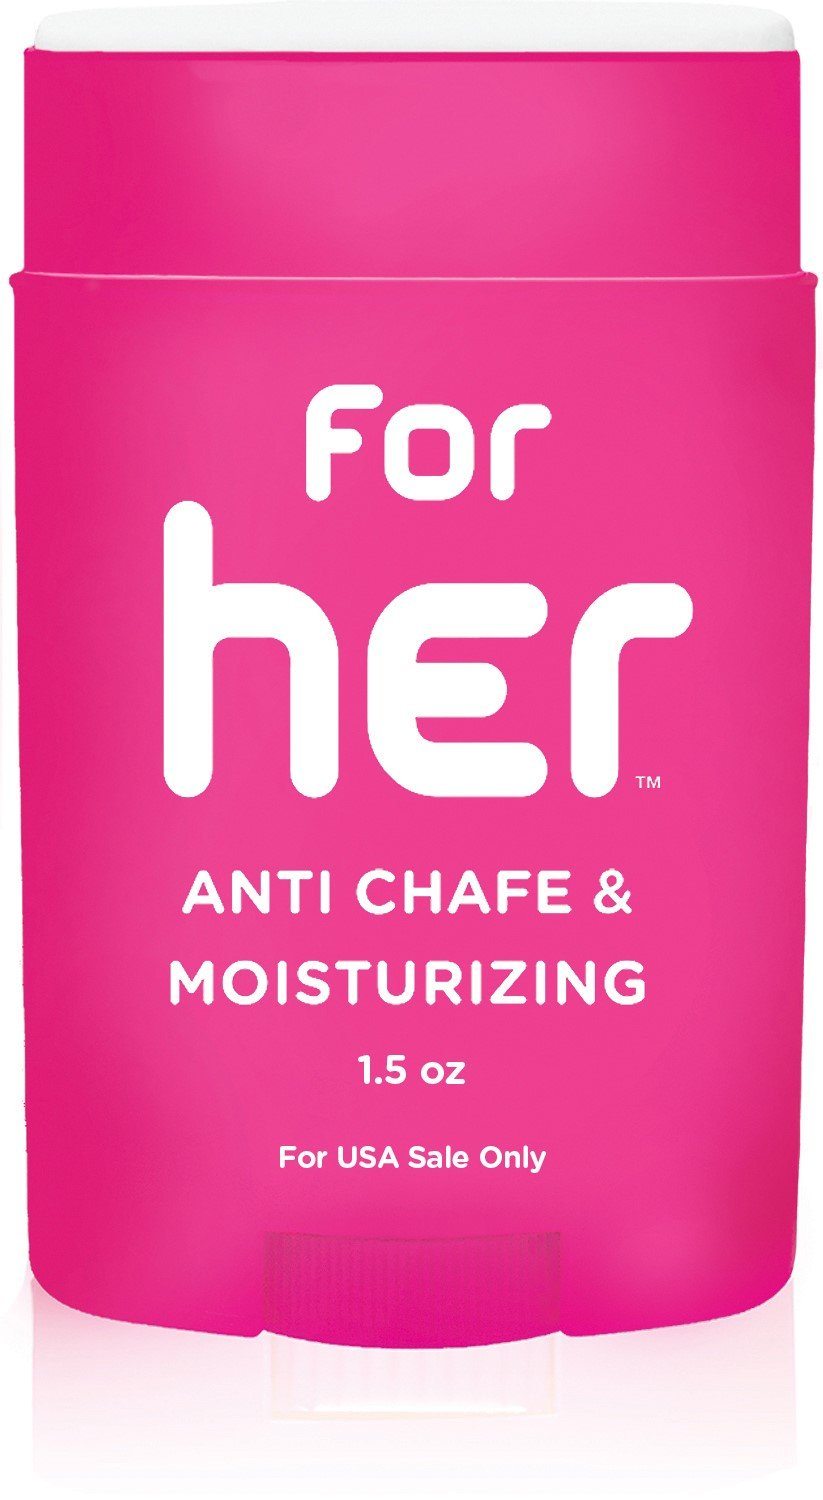 BodyGlide Body Glide For Her Anti Chafe Balm (For USA Sale Only)